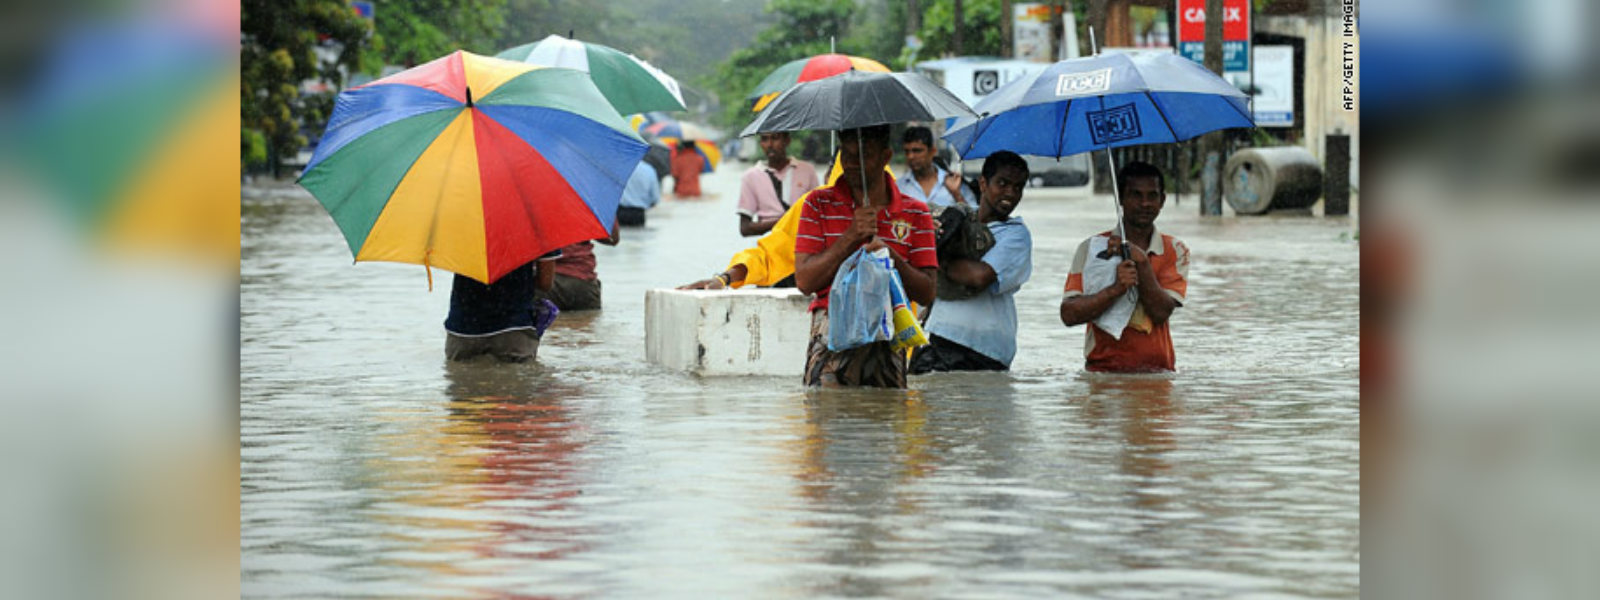 44,000 displaced due to inclement weather : DMC